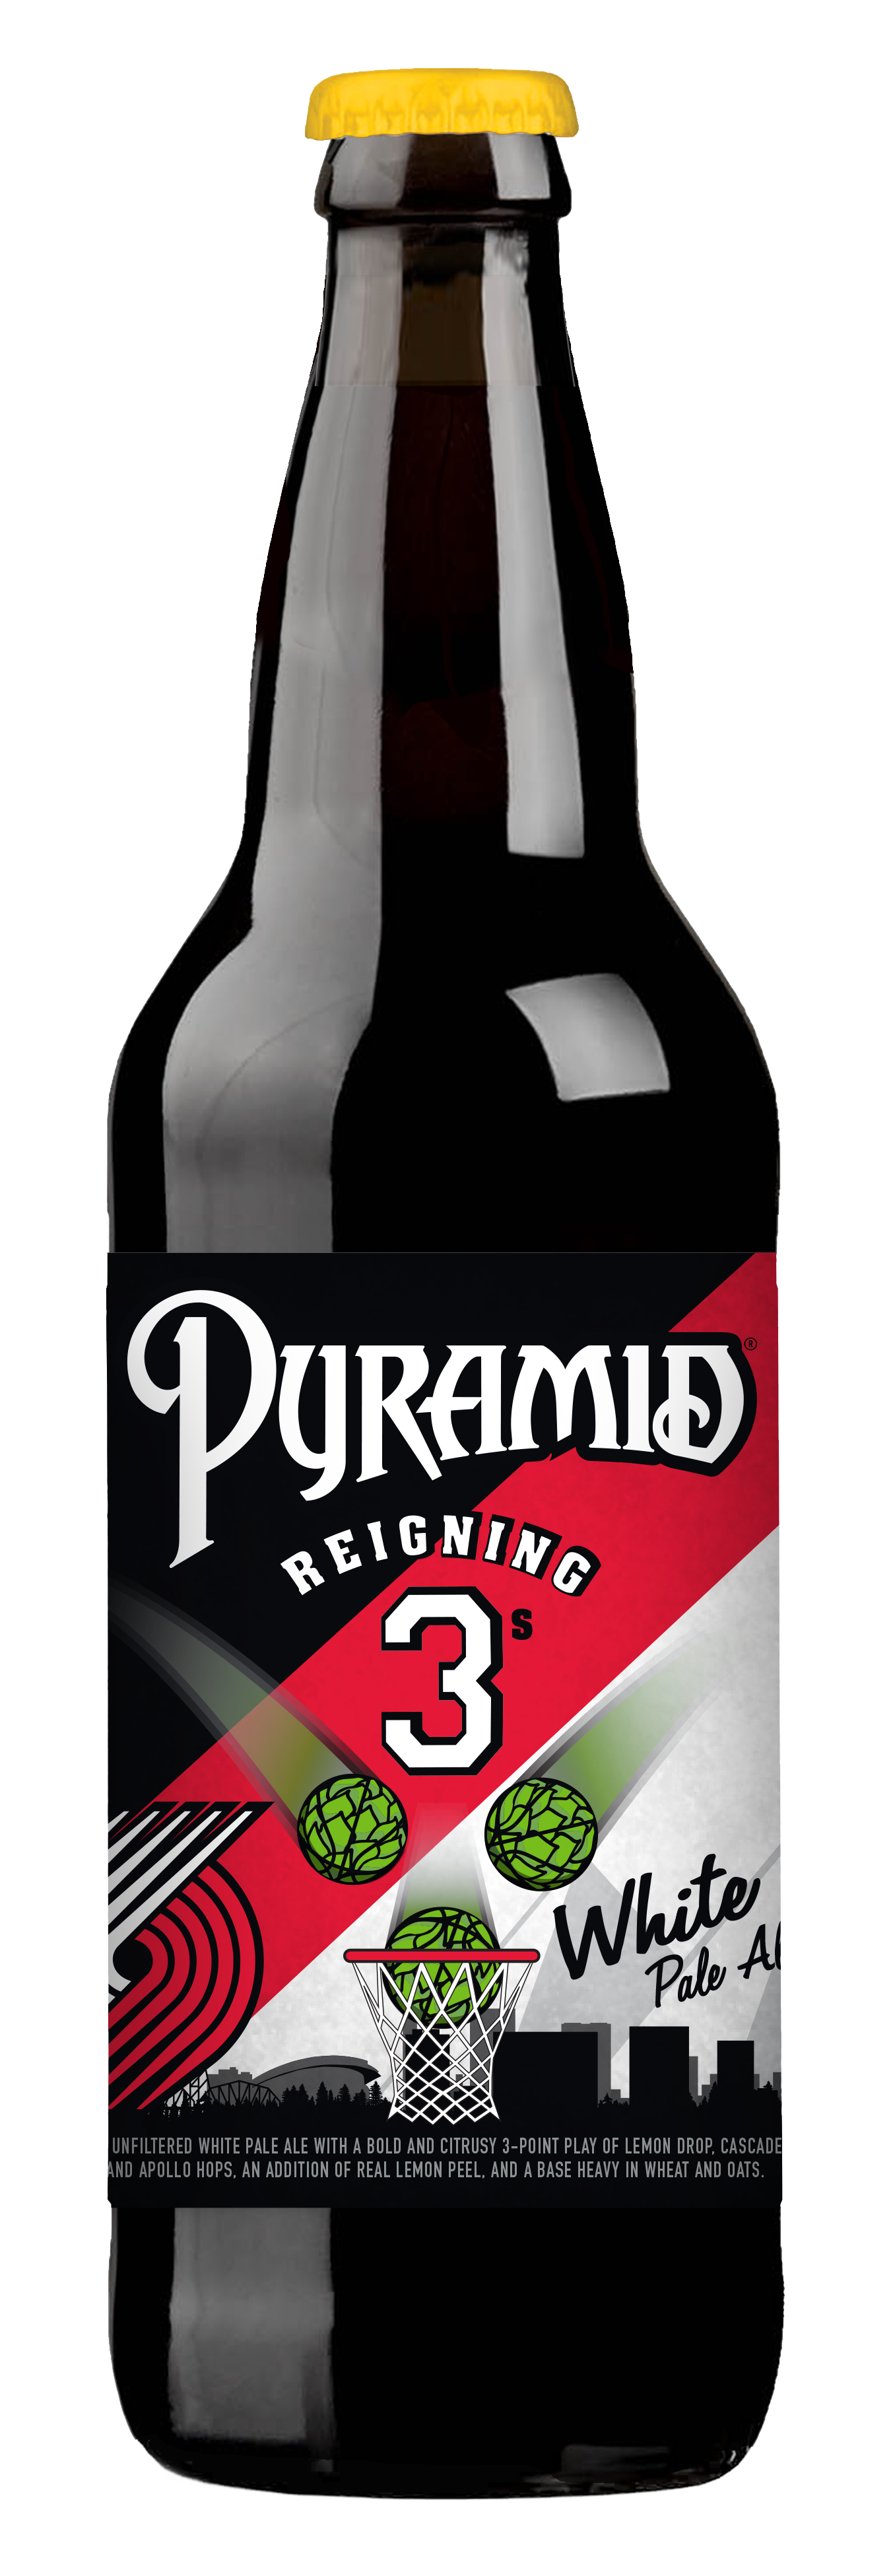 Pyramid Reigning 3s Bottle